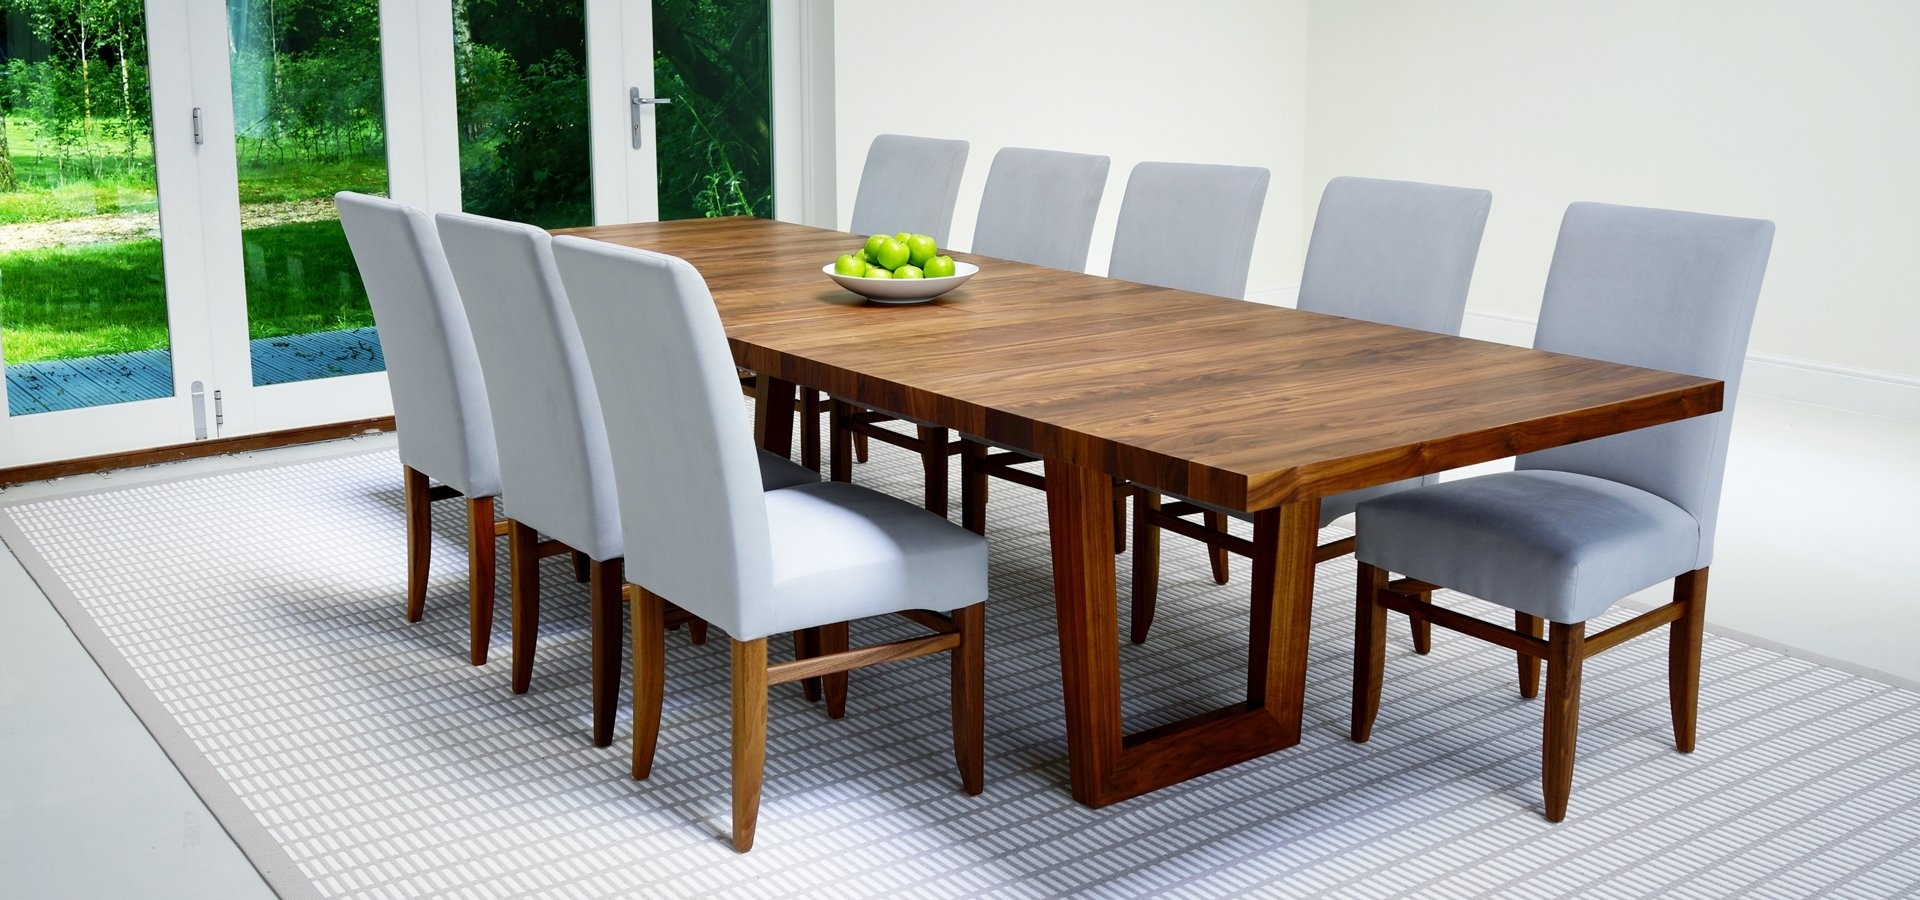 Current Modern Extendable Dining Table Set – Castrophotos Pertaining To Extendable Dining Room Tables And Chairs (Gallery 1 of 25)